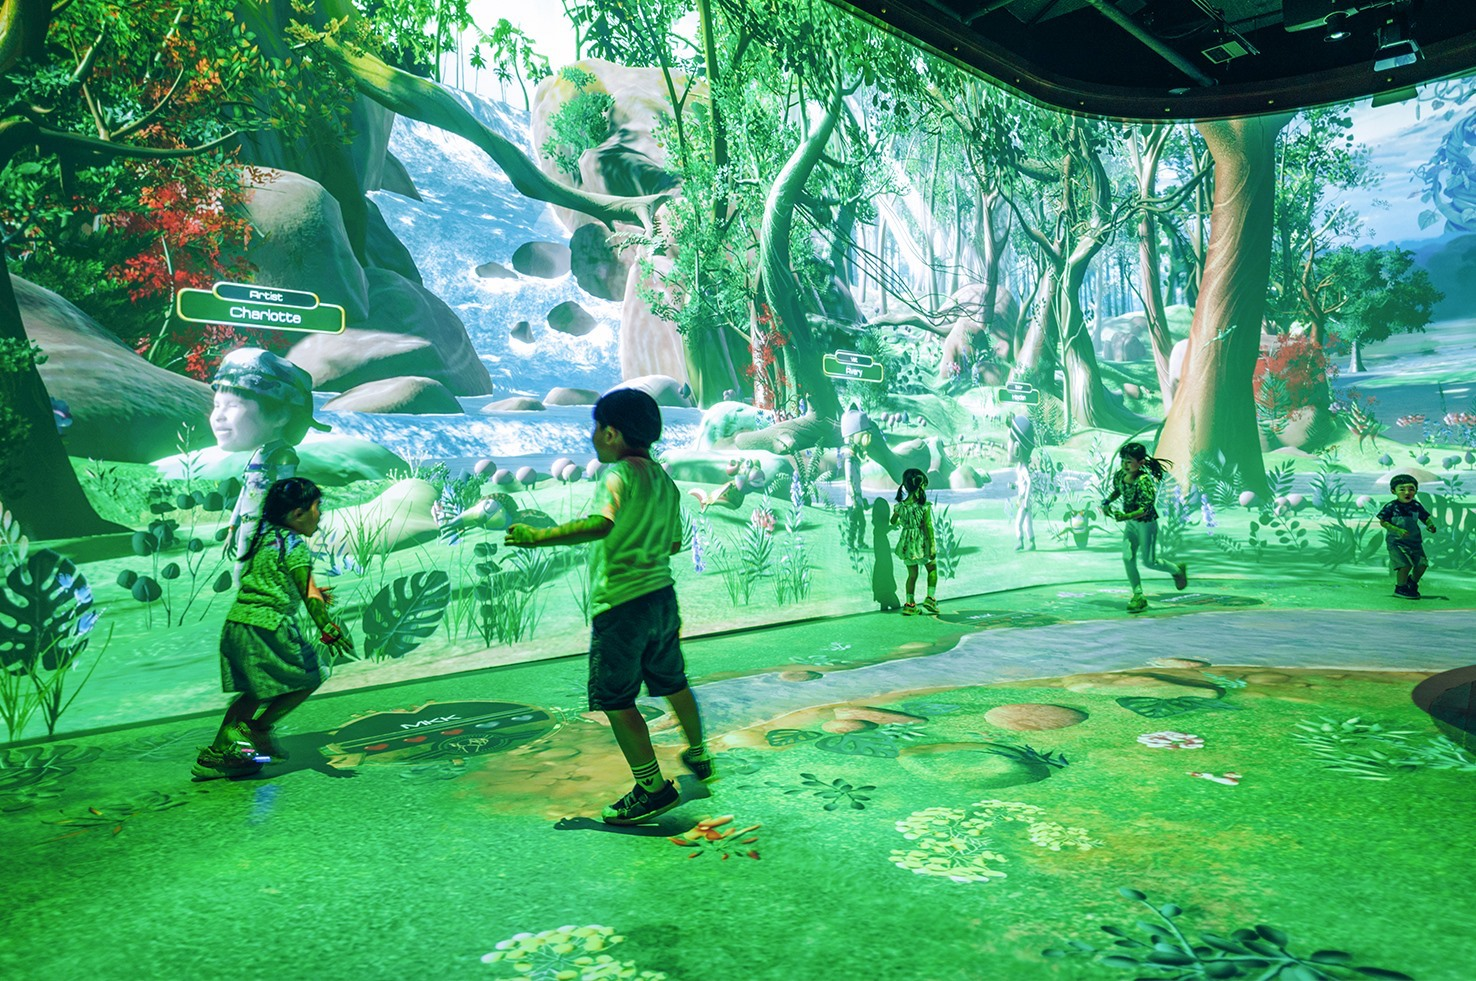 Avatar technology brings in New Immersive Learning Experience for Kids @Ocean Park 1